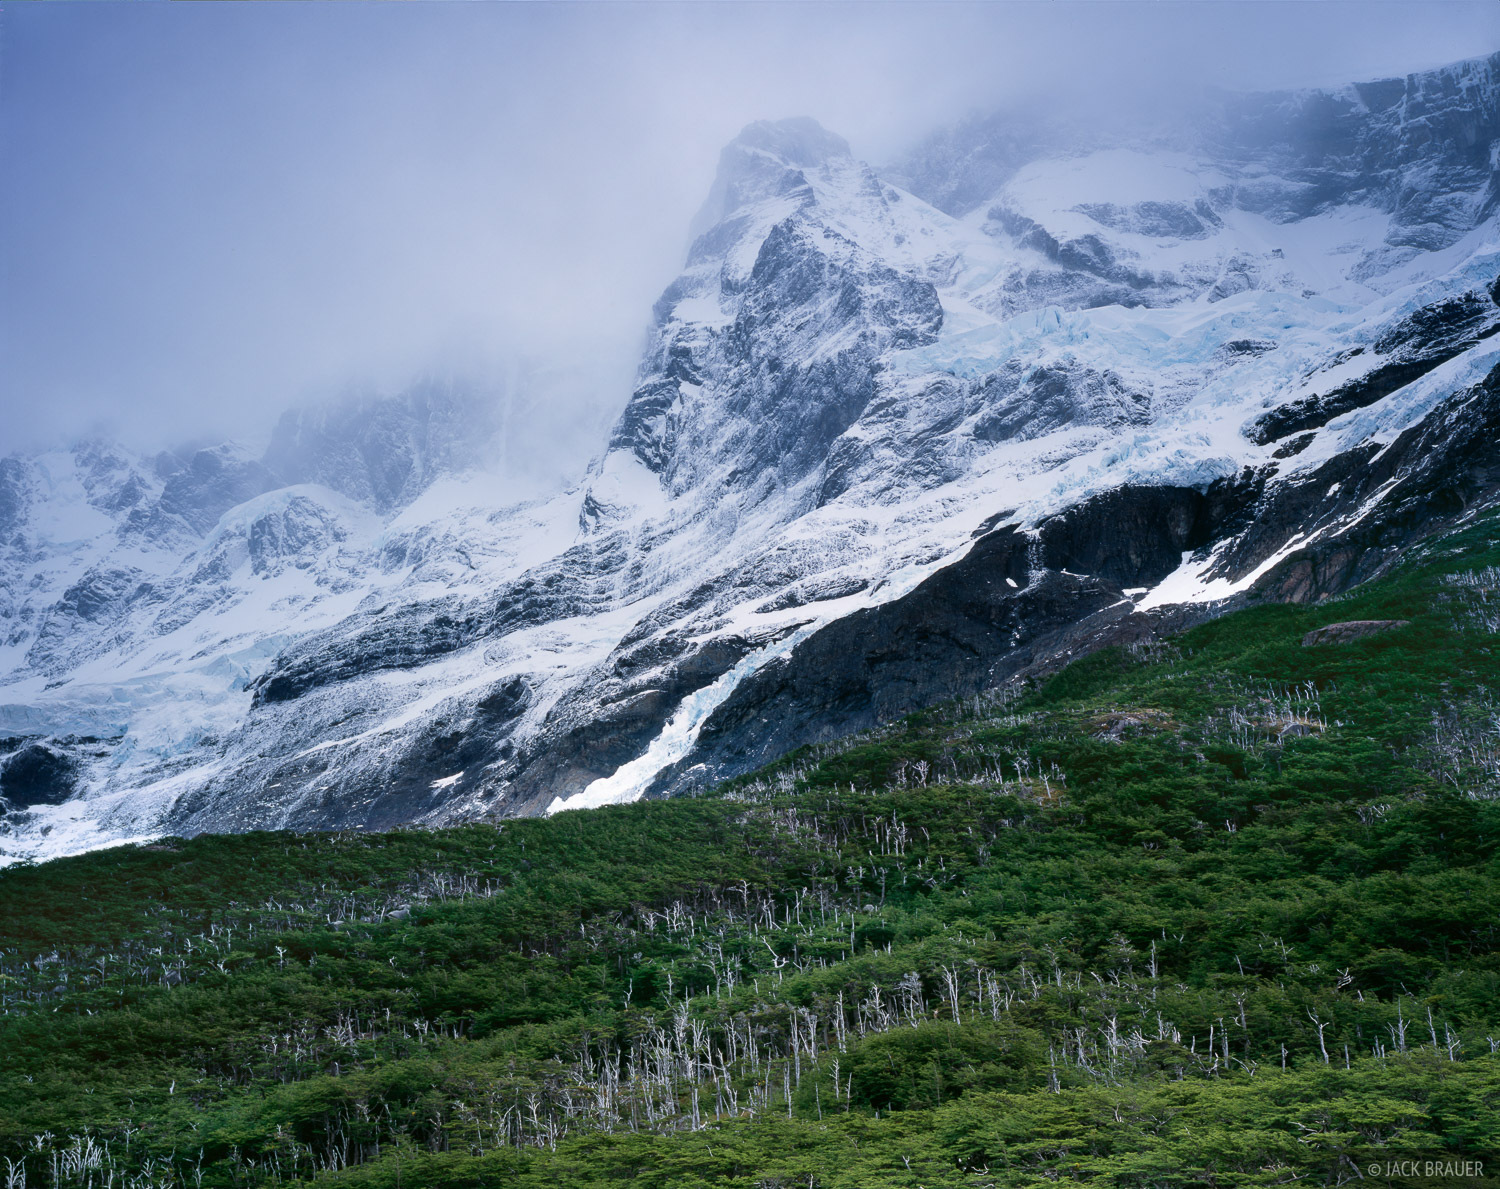 Glaciers tumble off the enormous face of Paine Grande into the lenga forest below.